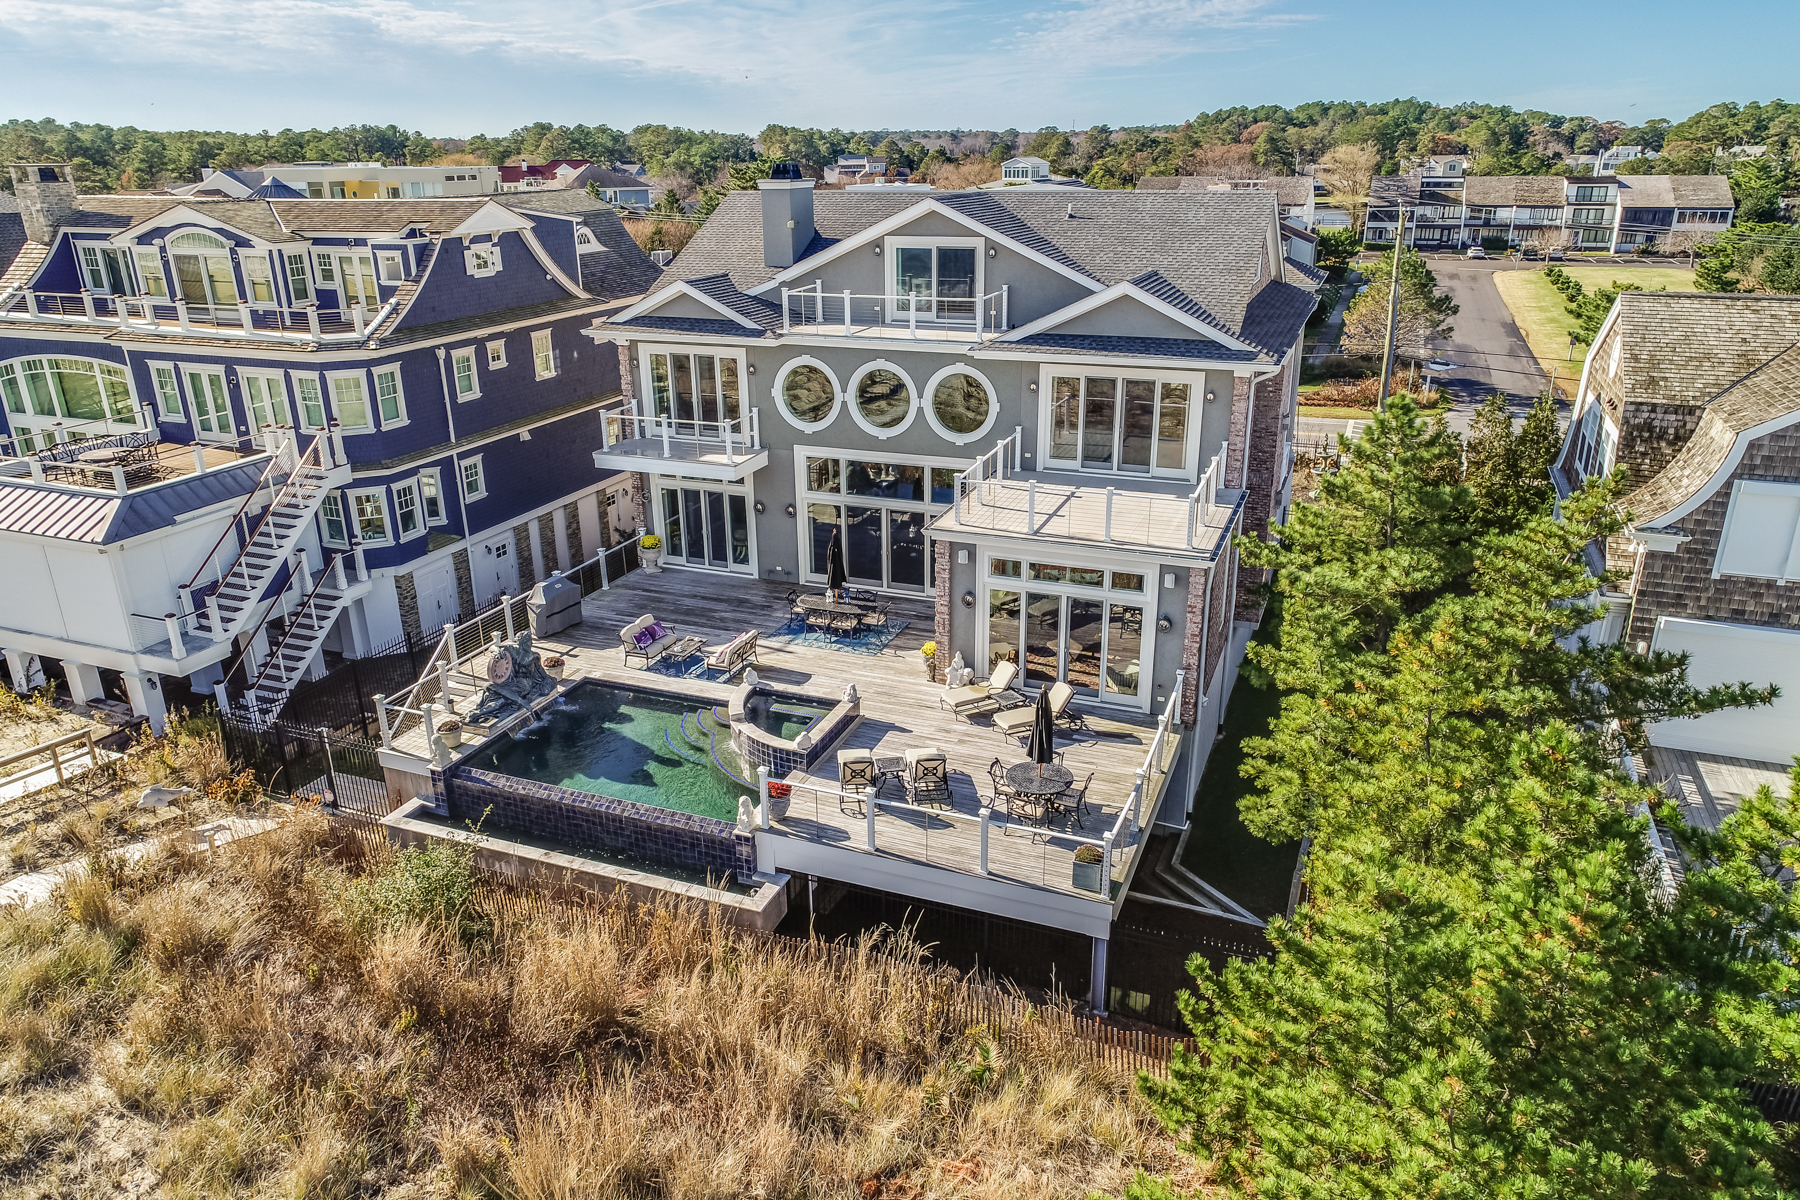 Single Family Home for Sale at 18 Ocean Drive , Rehoboth Beach, DE 19971 18 Ocean Drive Rehoboth Beach, Delaware 19971 United States